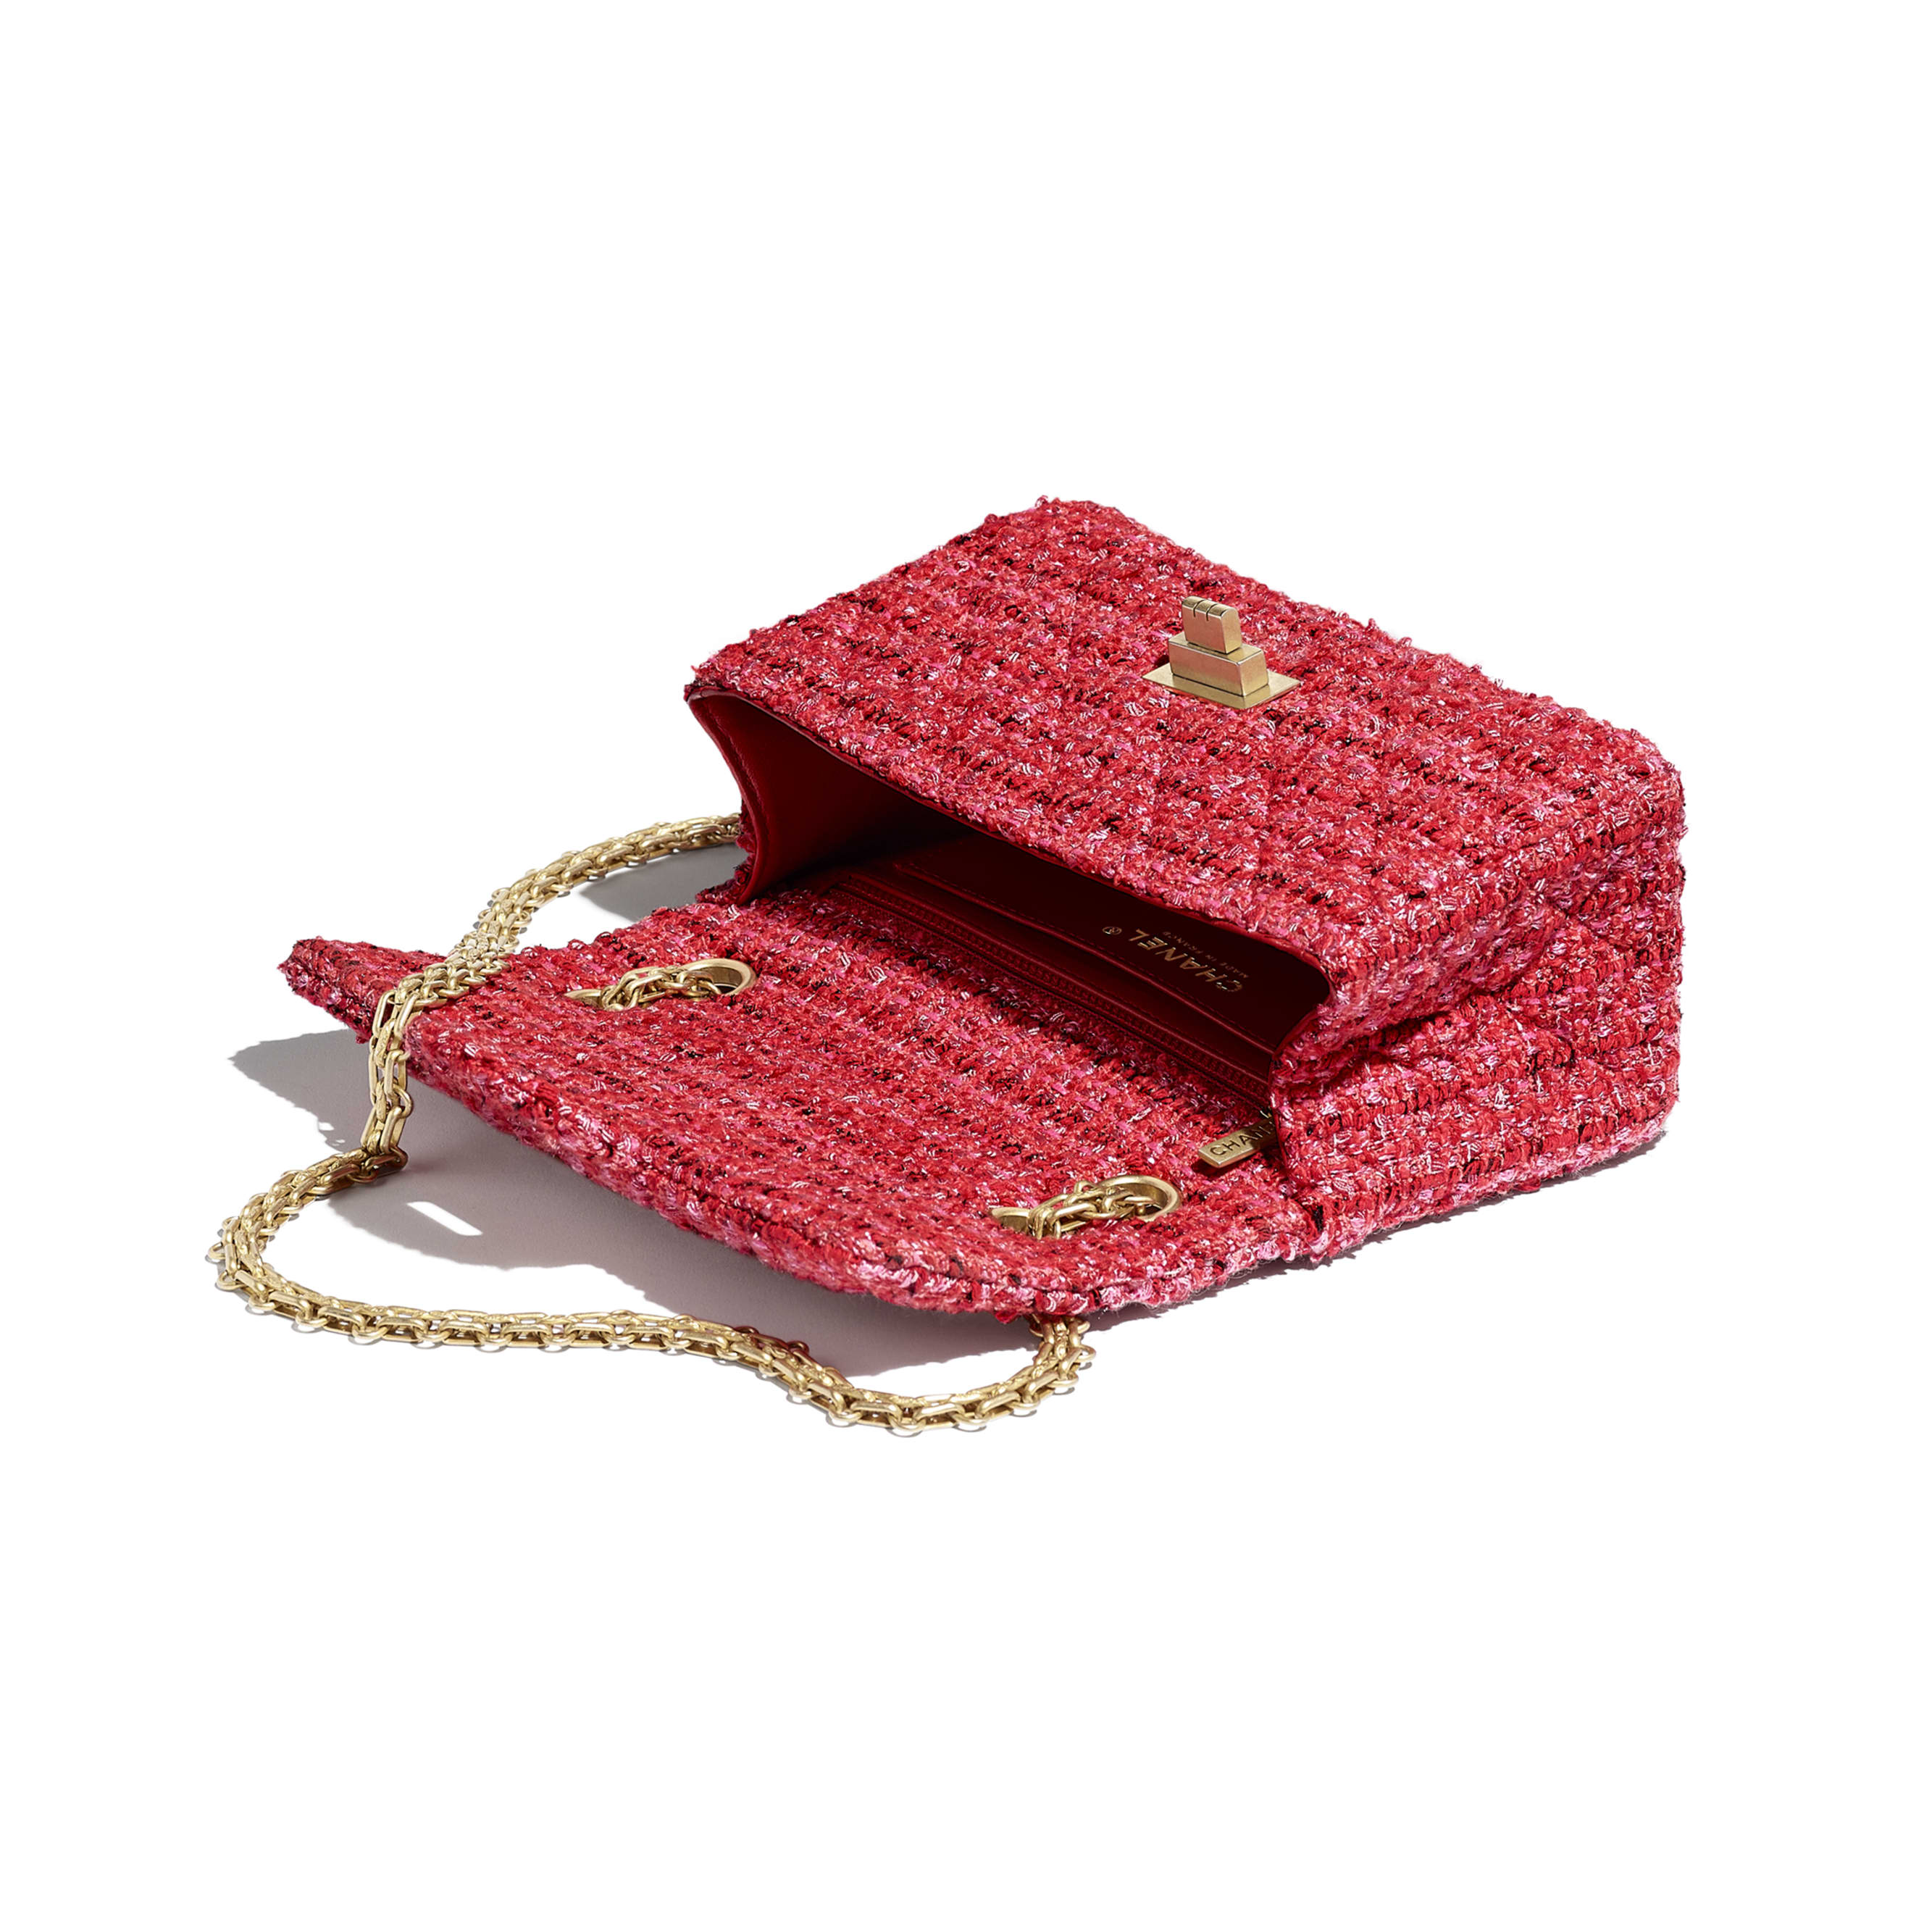 Mini 2.55 Handbag - Red, Ecru & Black - Tweed & Gold Metal - CHANEL - Other view - see standard sized version